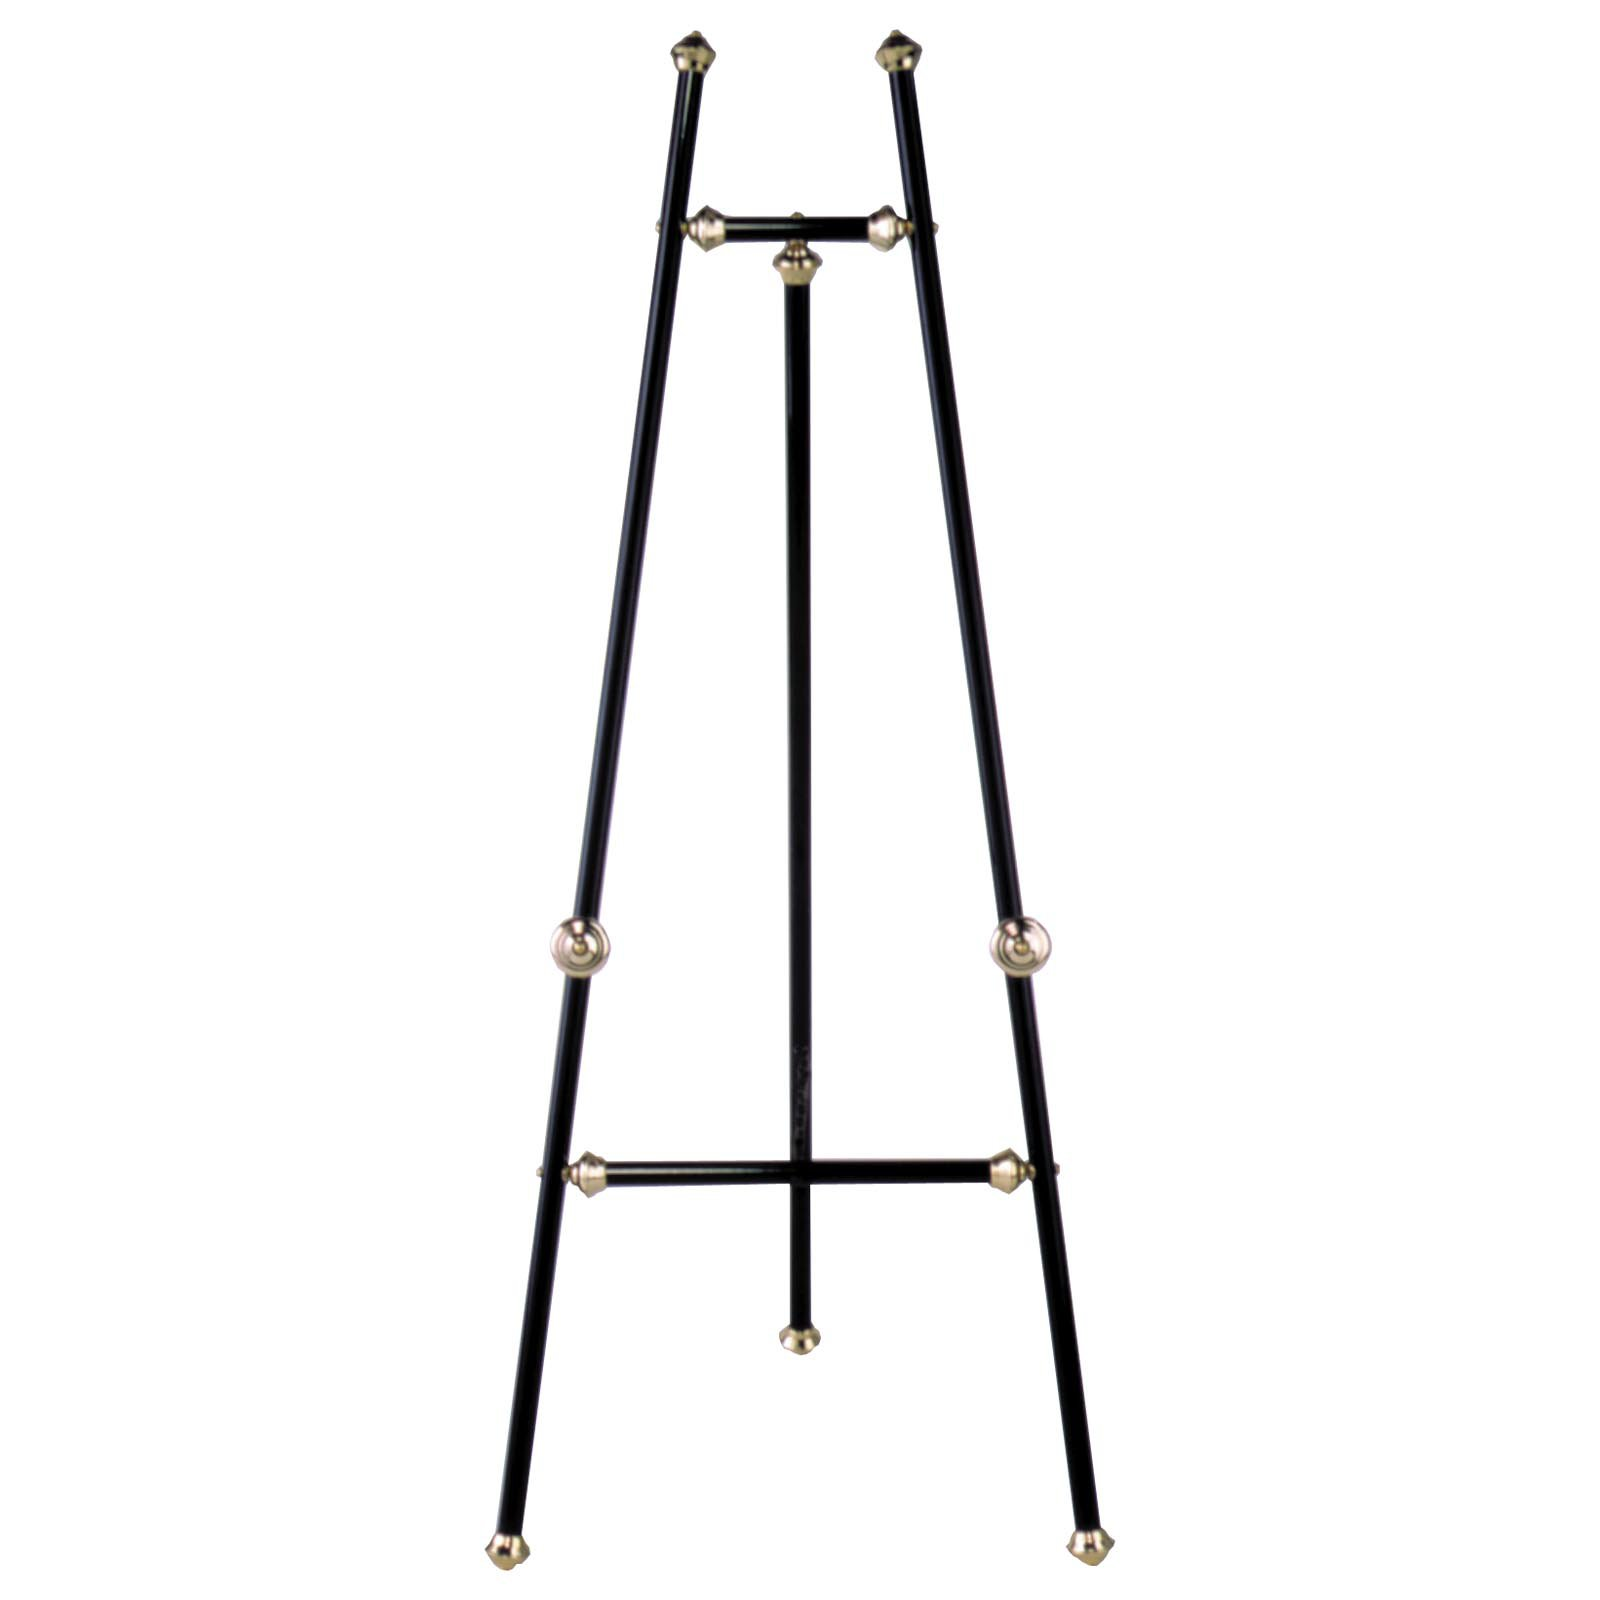 Testrite Baroque Display Easel | Hayneedle